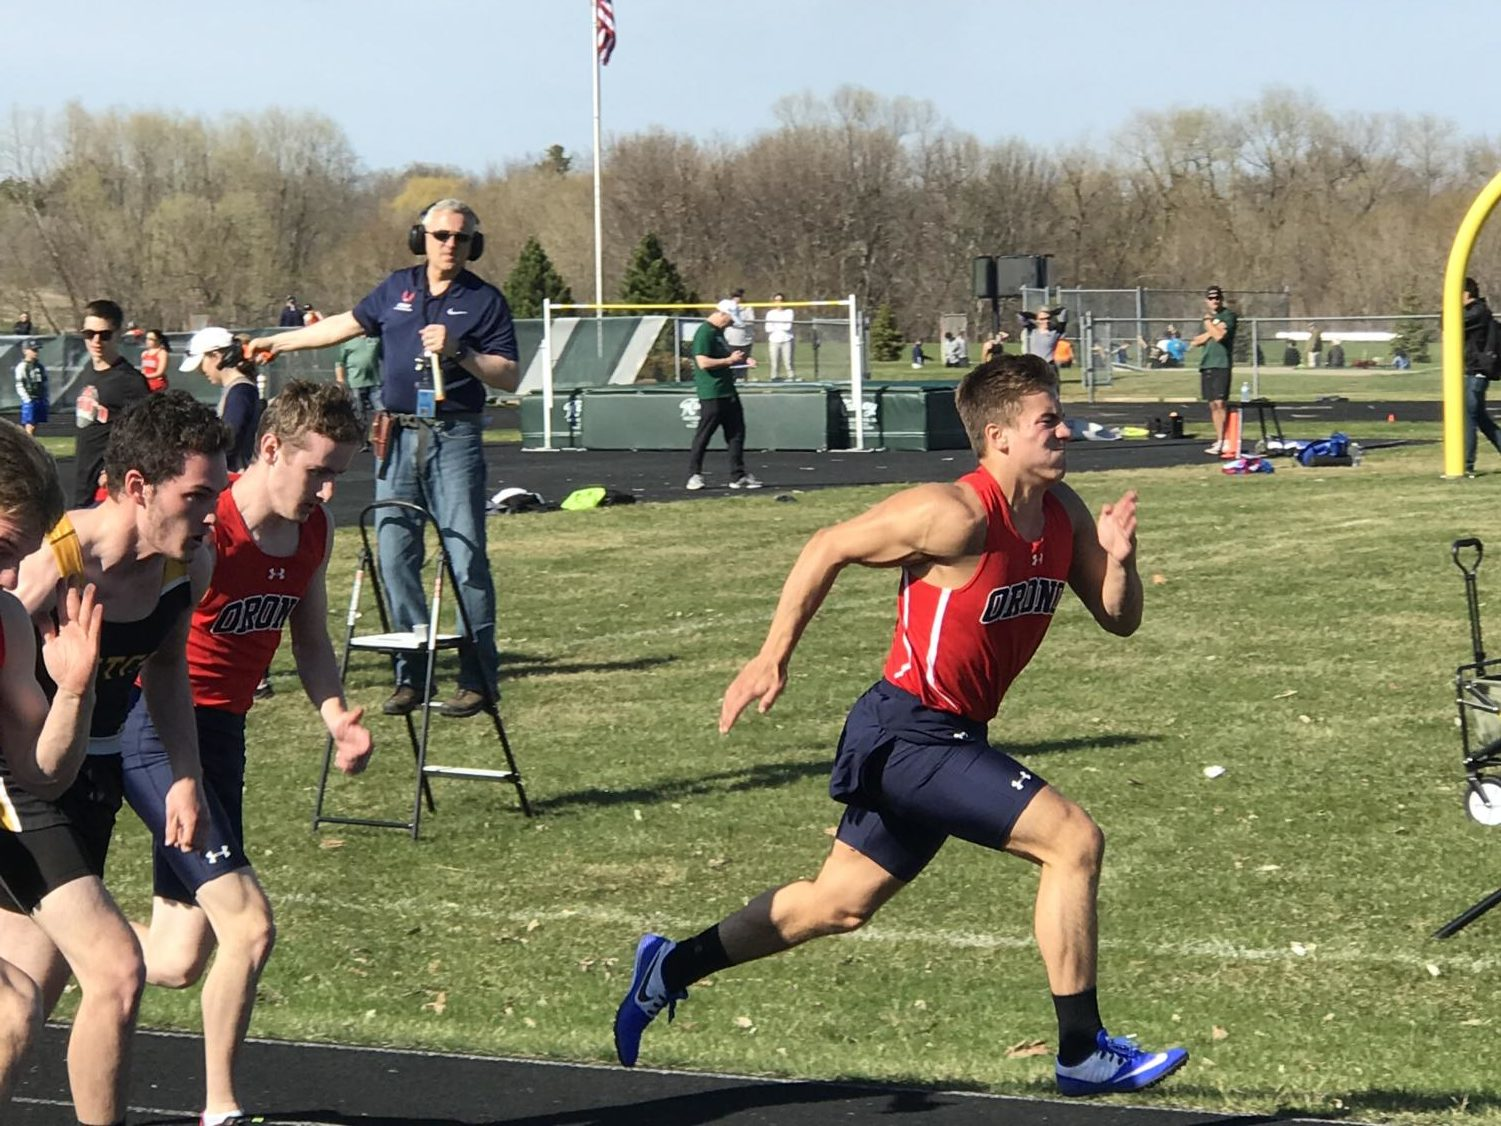 Devin's 100m dash is another one of his strong events. In this photo he takes off in front of his competition.